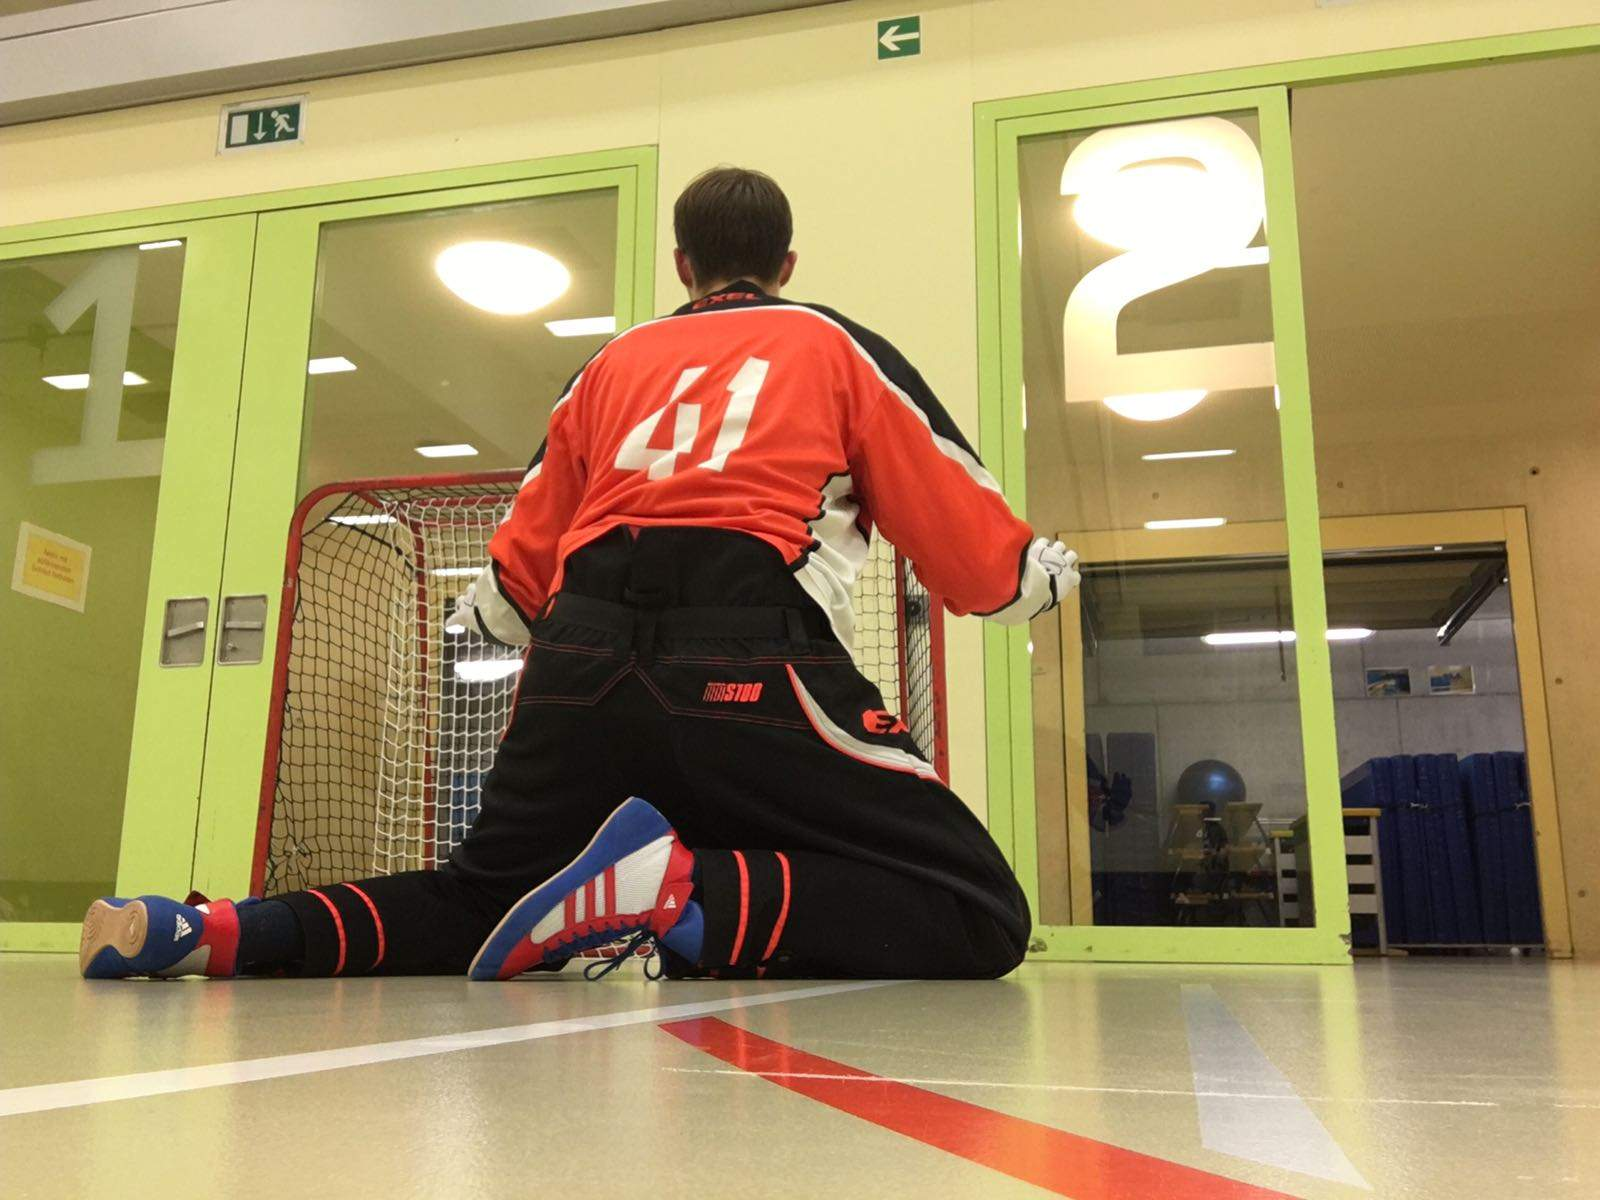 Floorball Goalie Closed Legs Back